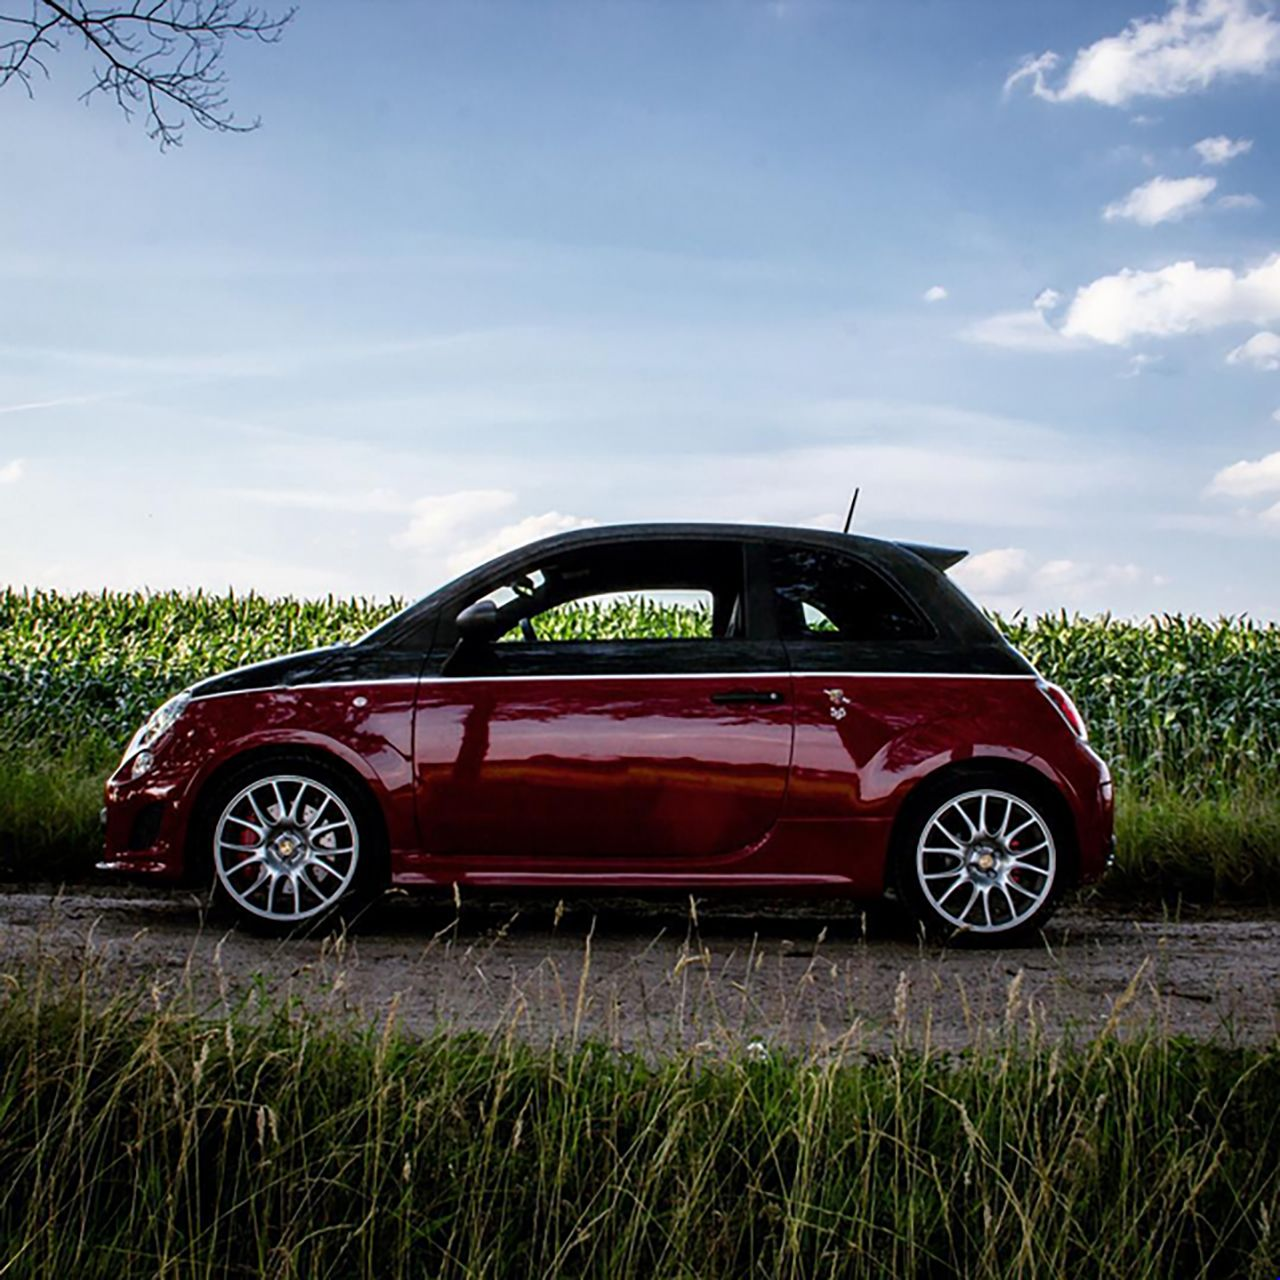 Le performance Abarth su Instagram